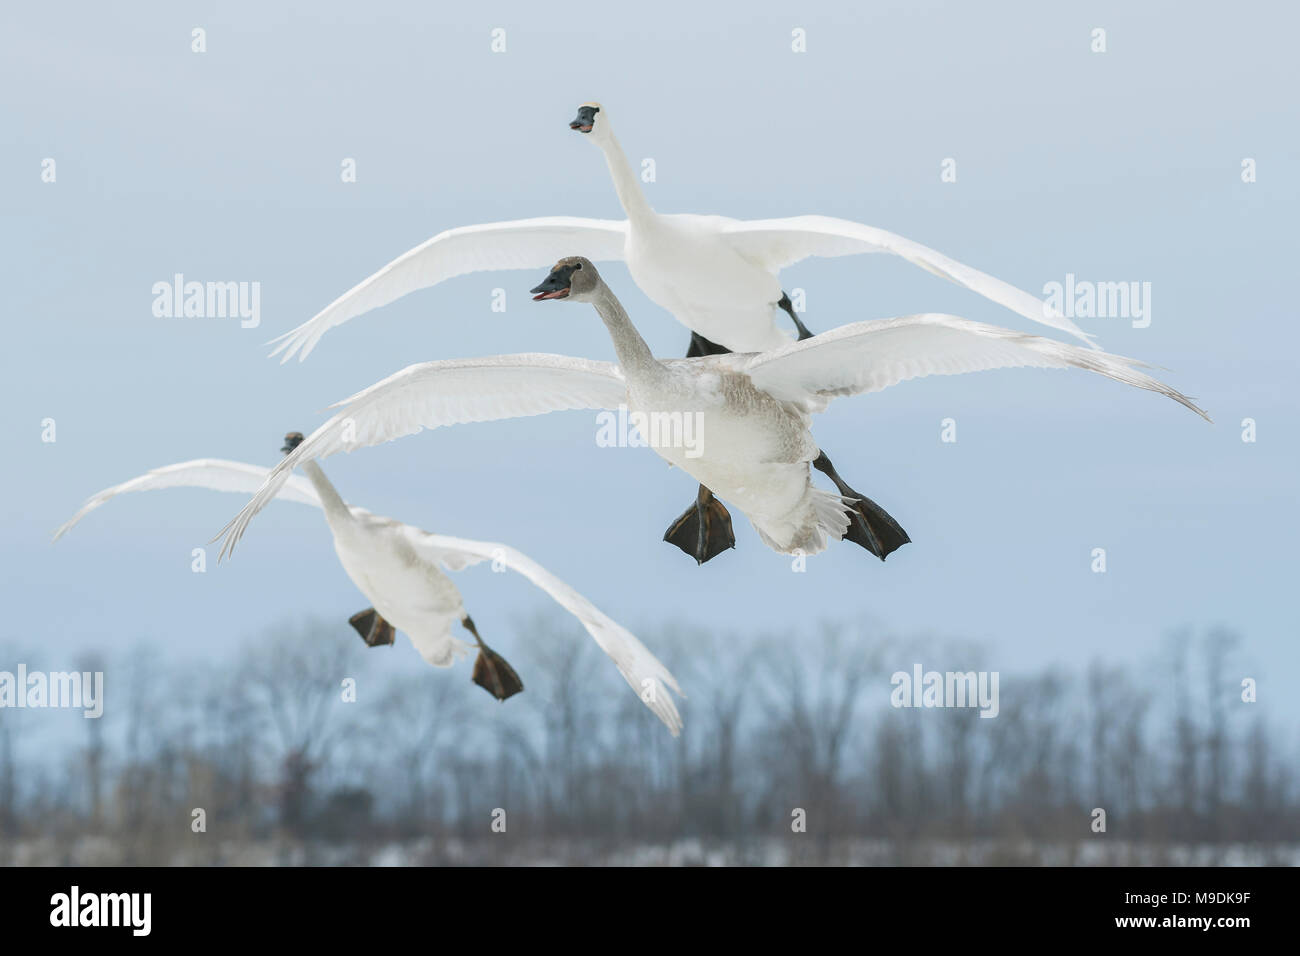 Trumpeter swans (Cygnus buccinator) landing on St. Croix River, WI, USA, late January, by Dominique Braud/Dembinsky Photo Assoc - Stock Image